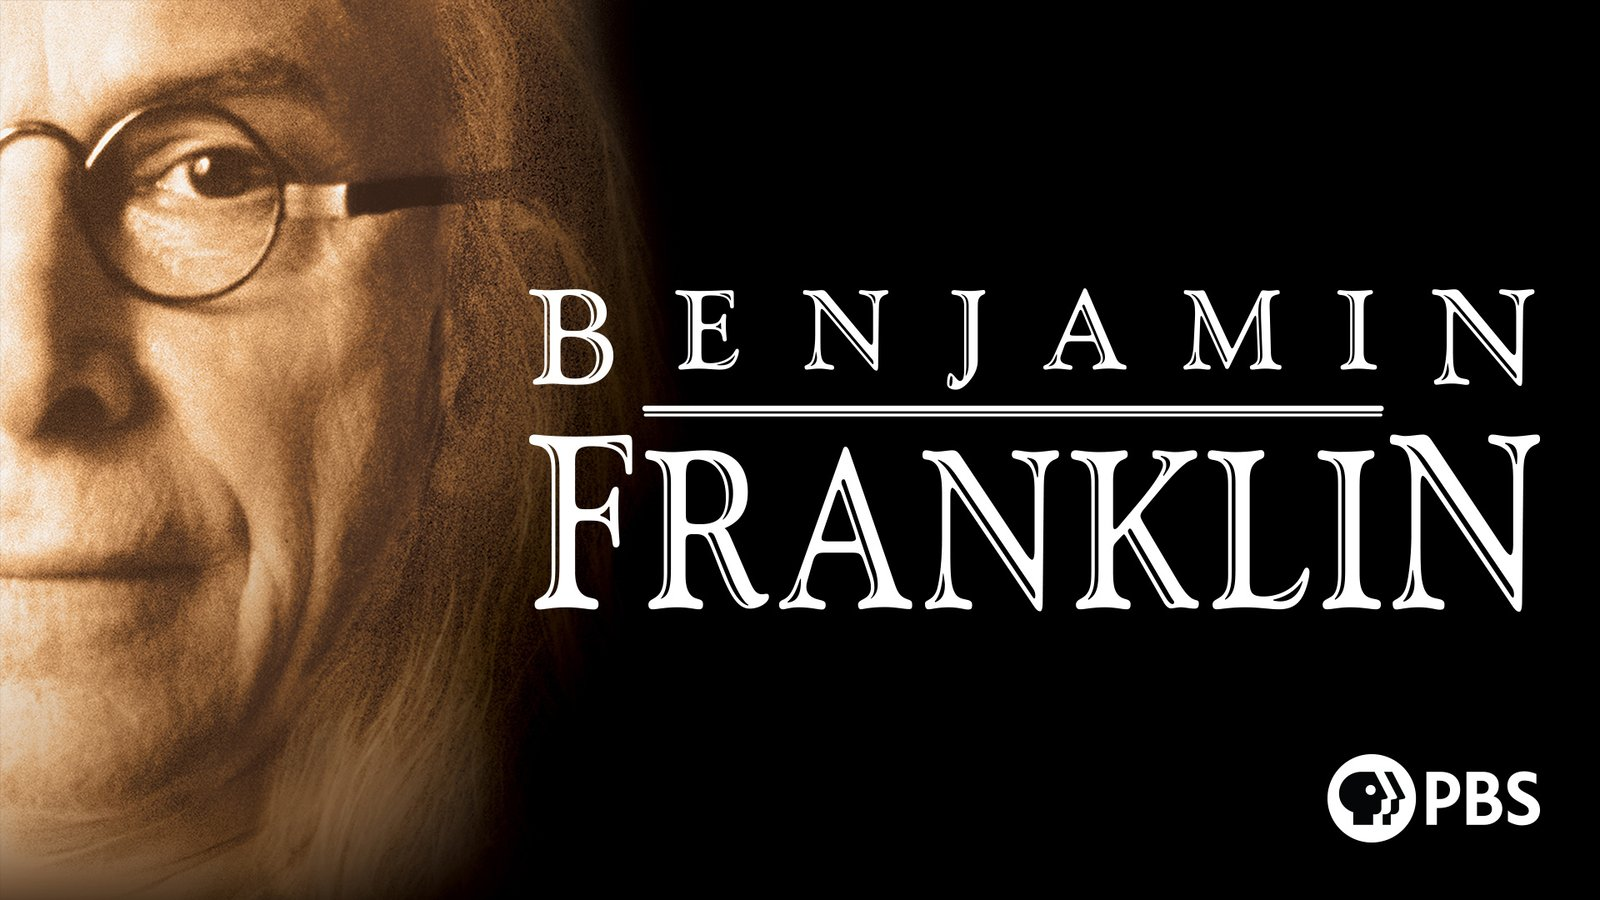 Benjamin Franklin - A Revolutionary Genius